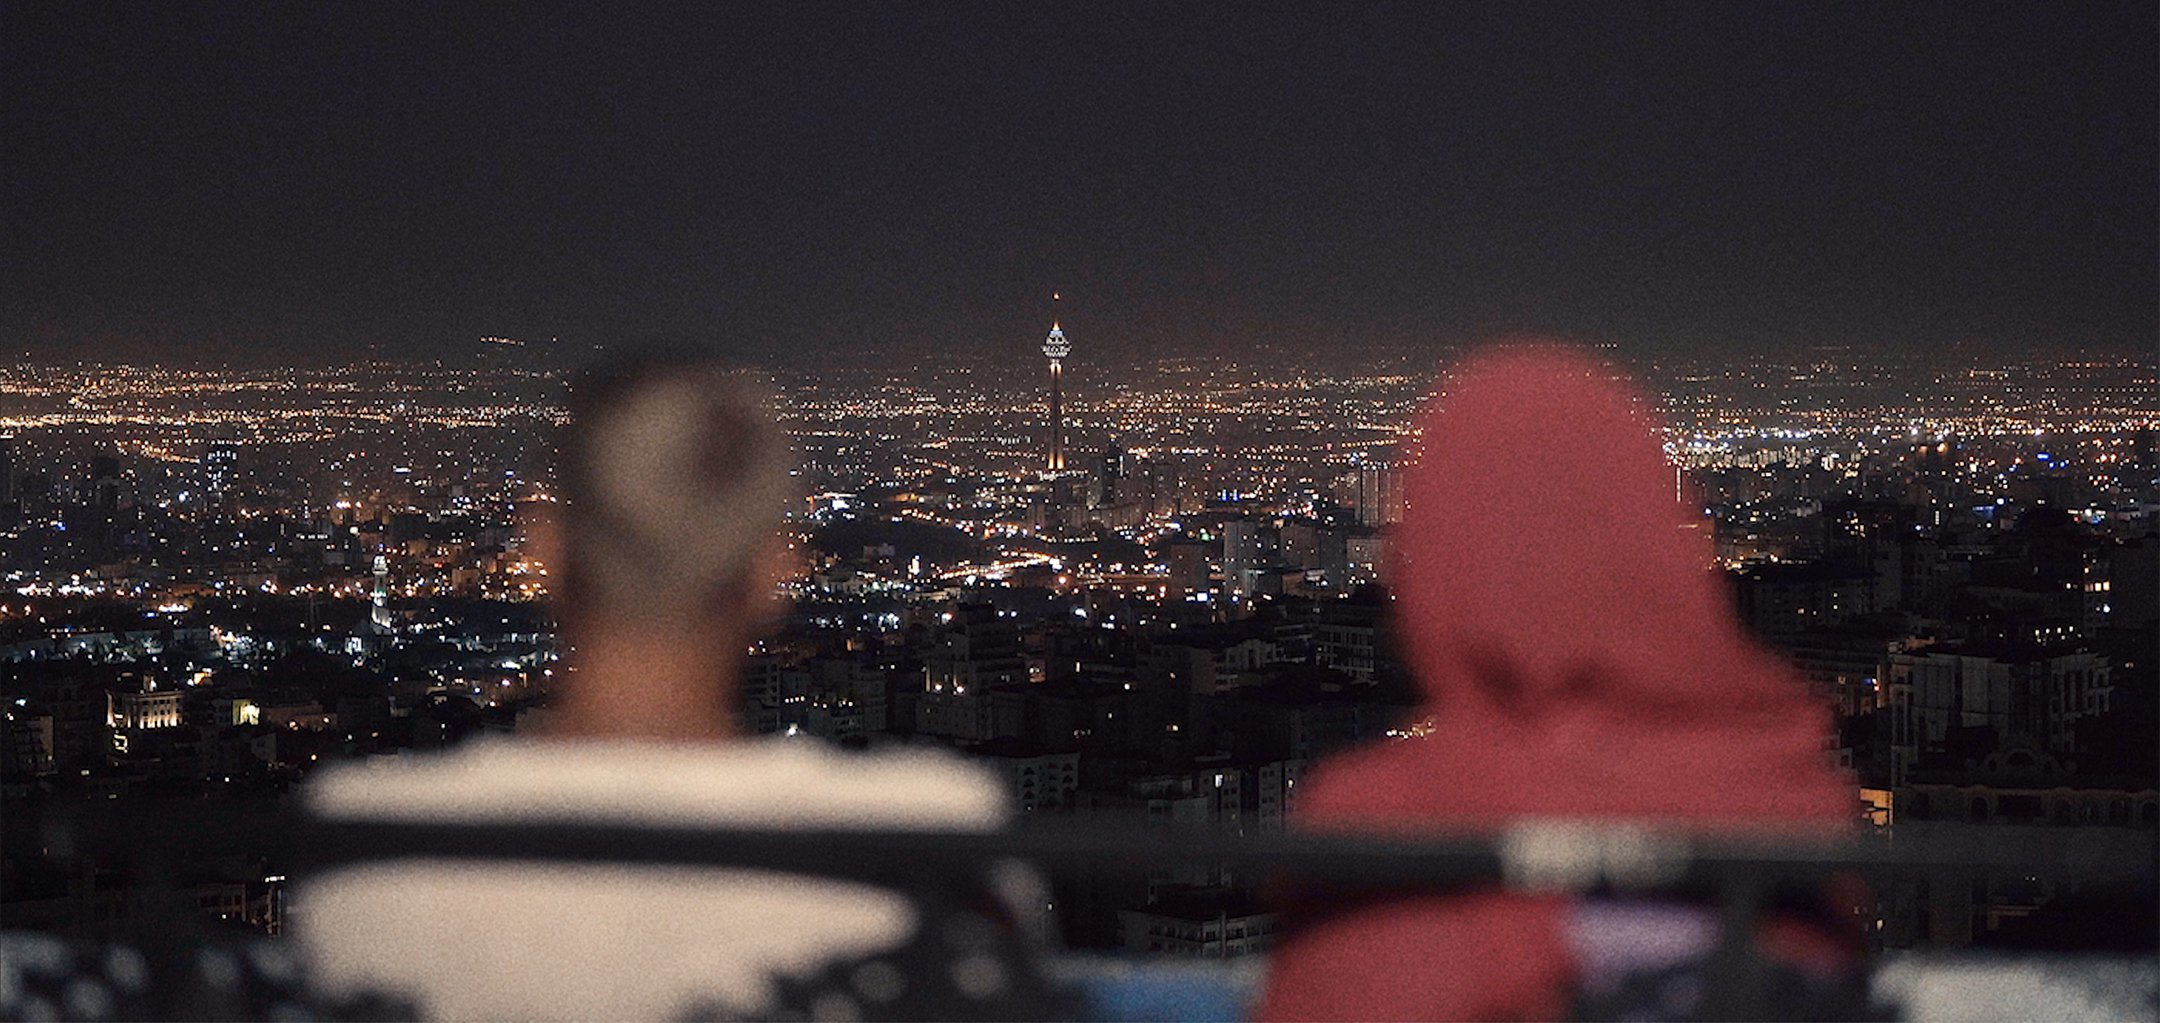 Two figures looking over a cityscape vista at night in 'Happiness' (2021) La Onde Productions